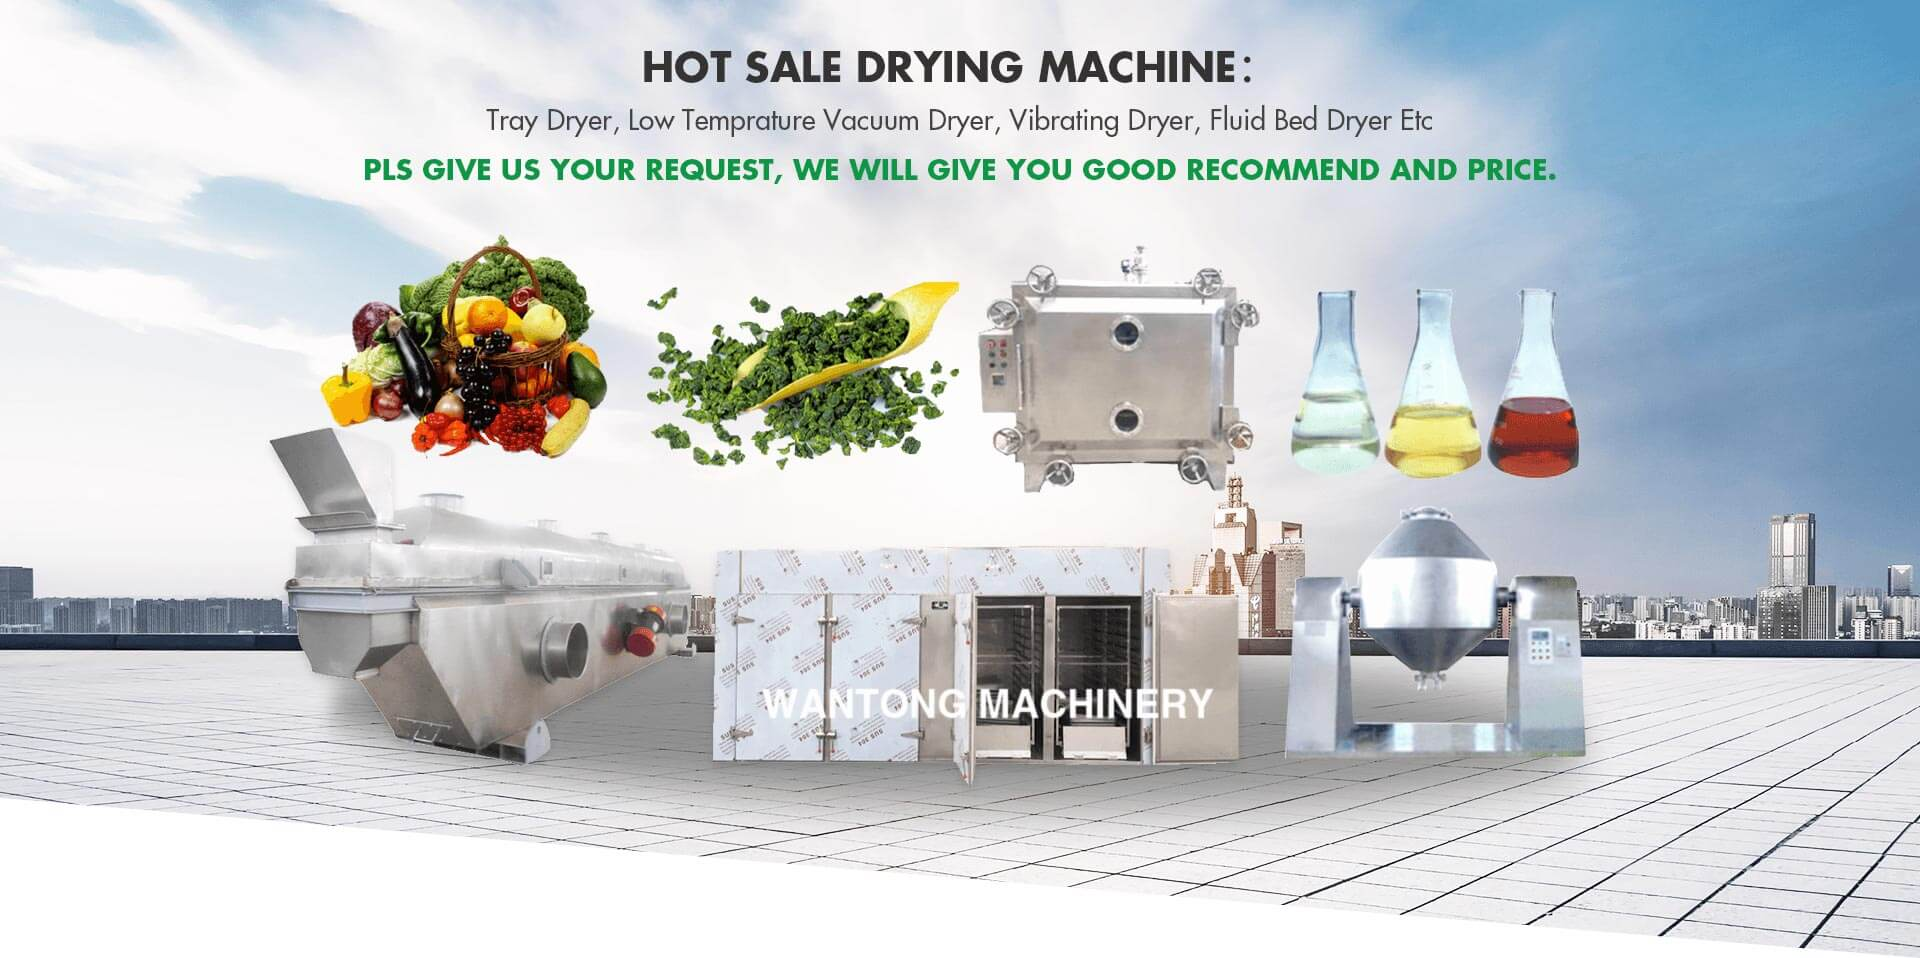 Hot sale drying machine